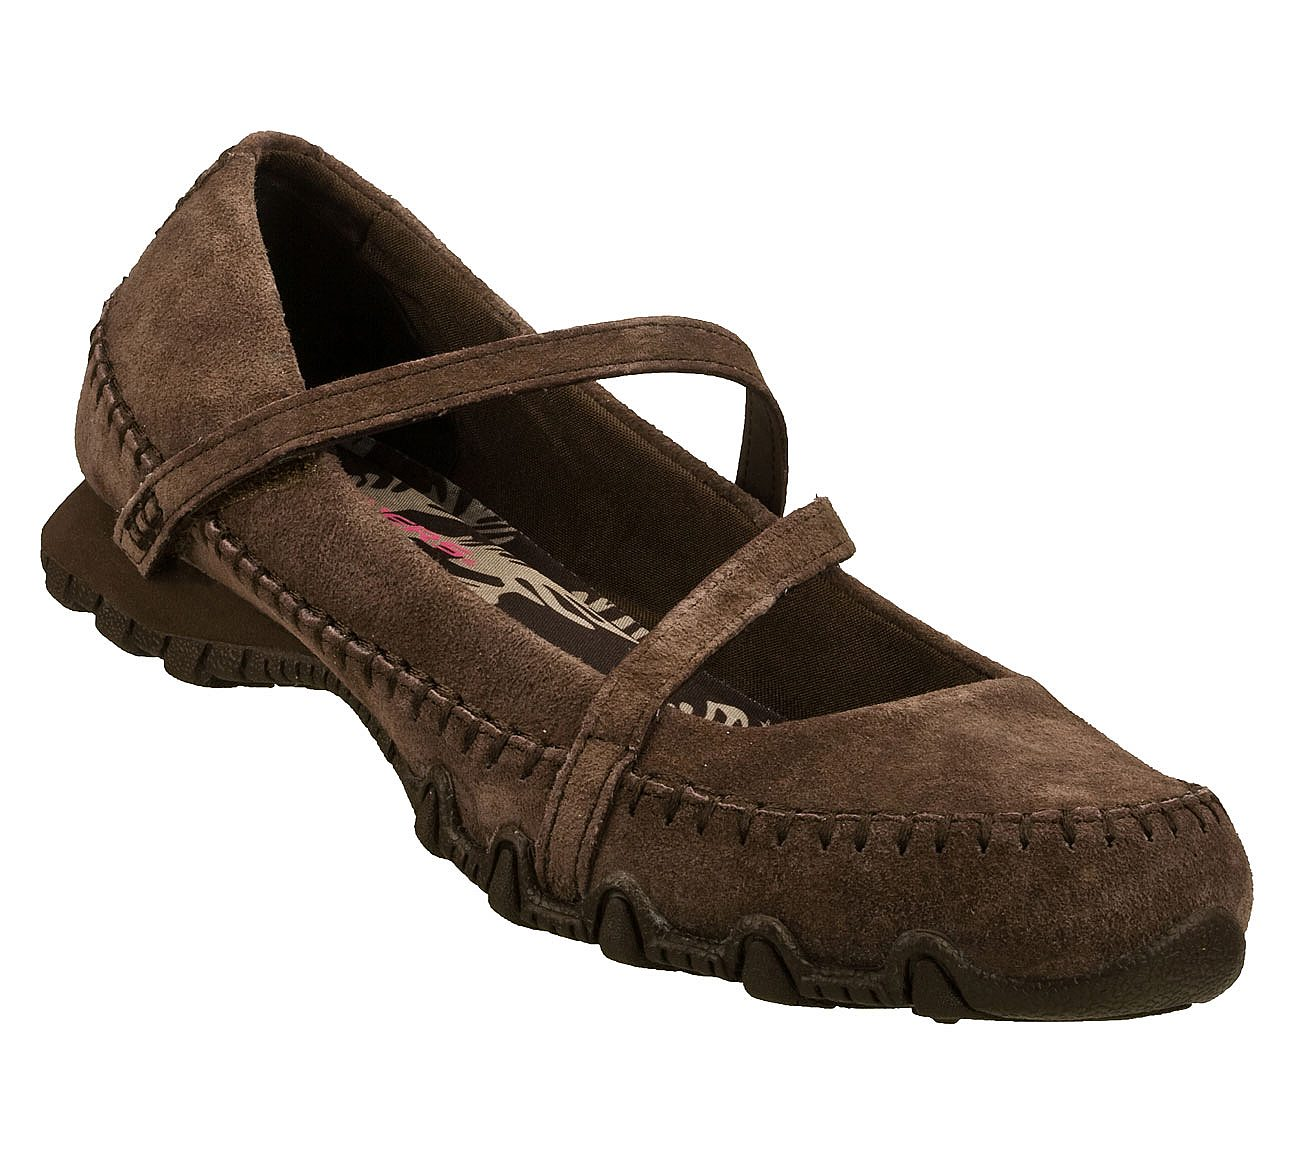 Comfort Shoes Skechers Womens Bikers Brown Leather Mary Jane Shoes Size 9.5 Clothing, Shoes & Accessories